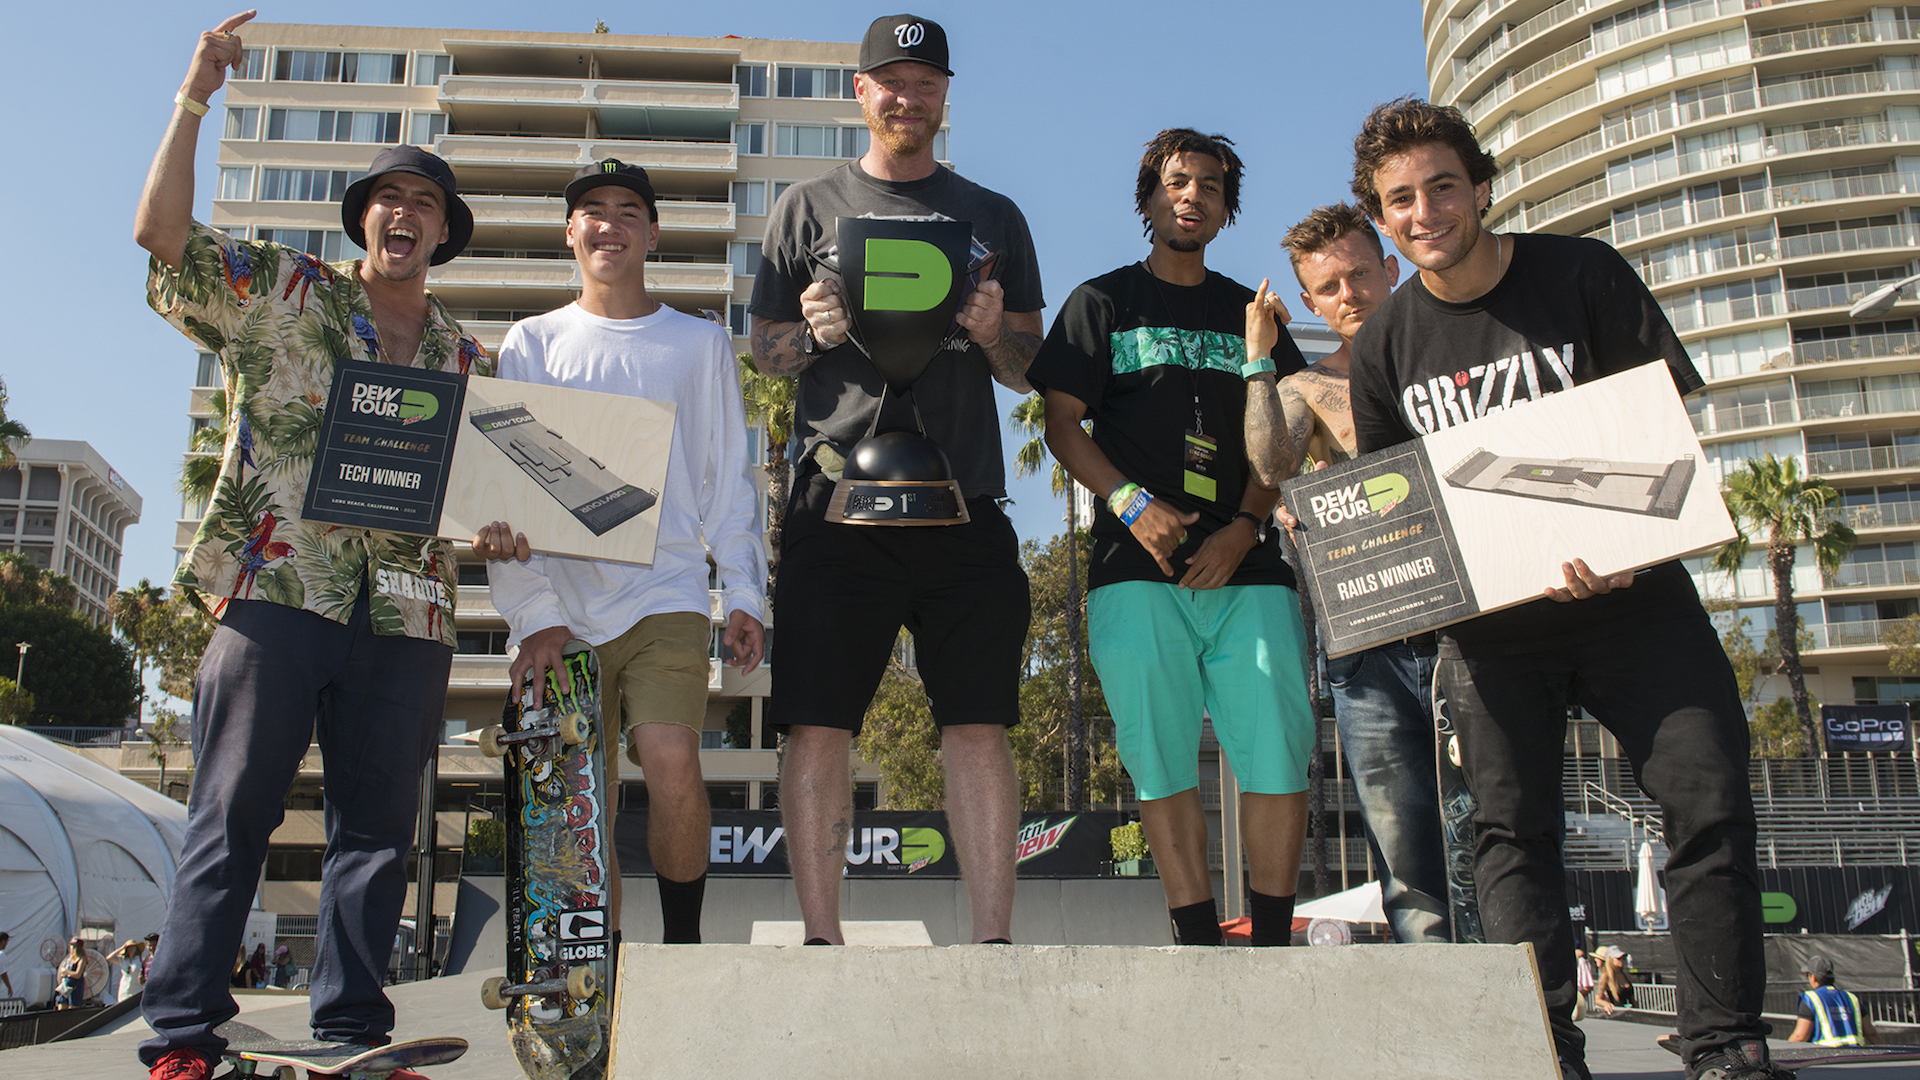 bLind Skateboards may have been an underdog against the stacked list of teams, but after Dew Tour's Team Challenge it is unlikely they will ever be slept on again. (L to R) TJ Rogers, Trey Wood, Bill Weiss, Kevin Romar, Cody McEntire and Micky Papa. Photo: Chami